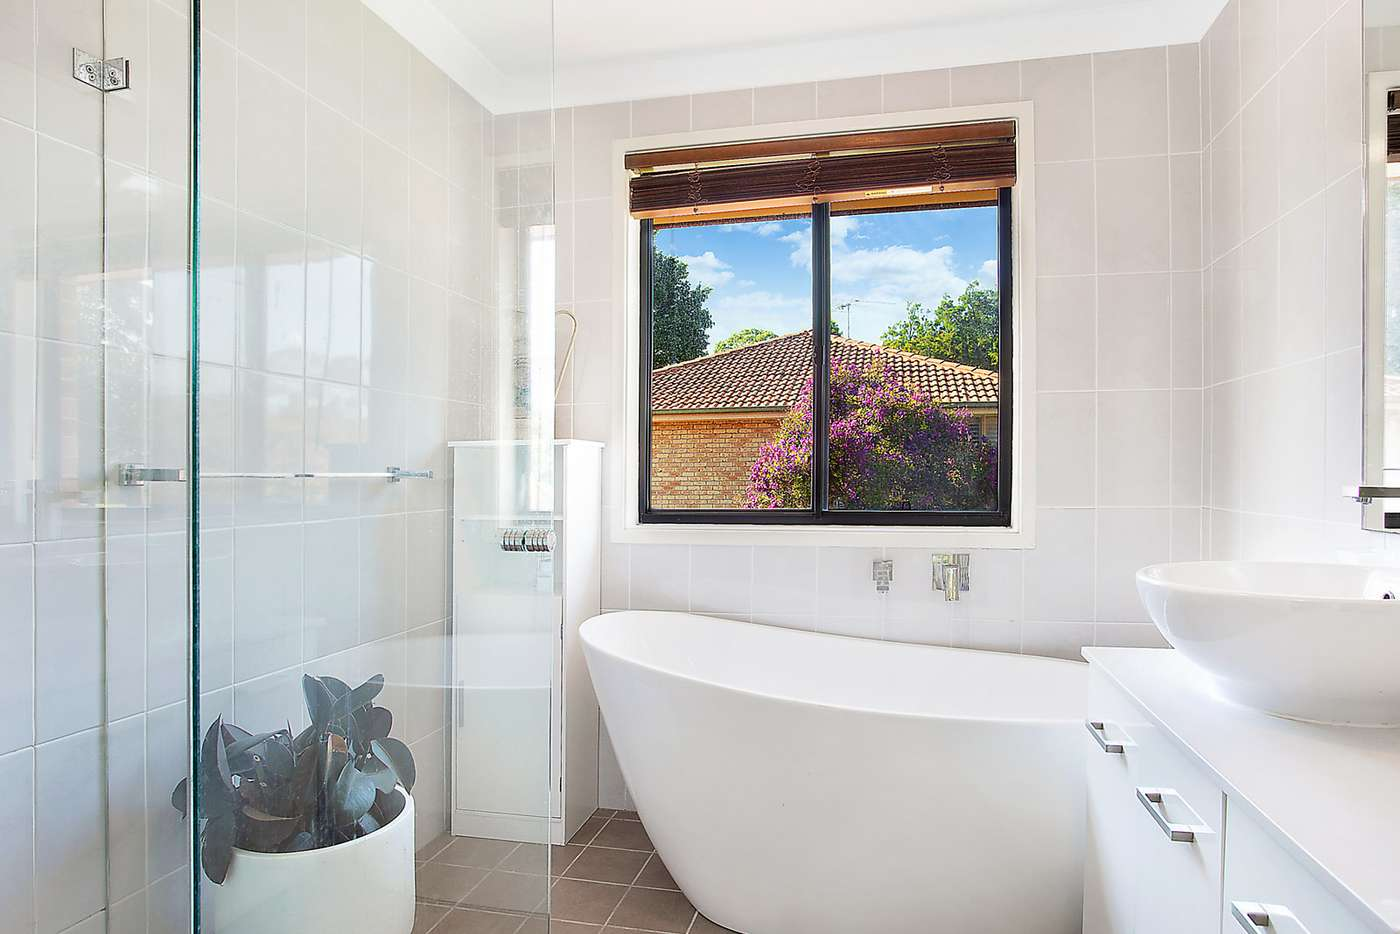 Fifth view of Homely house listing, 16 Thorn Street, Ryde NSW 2112